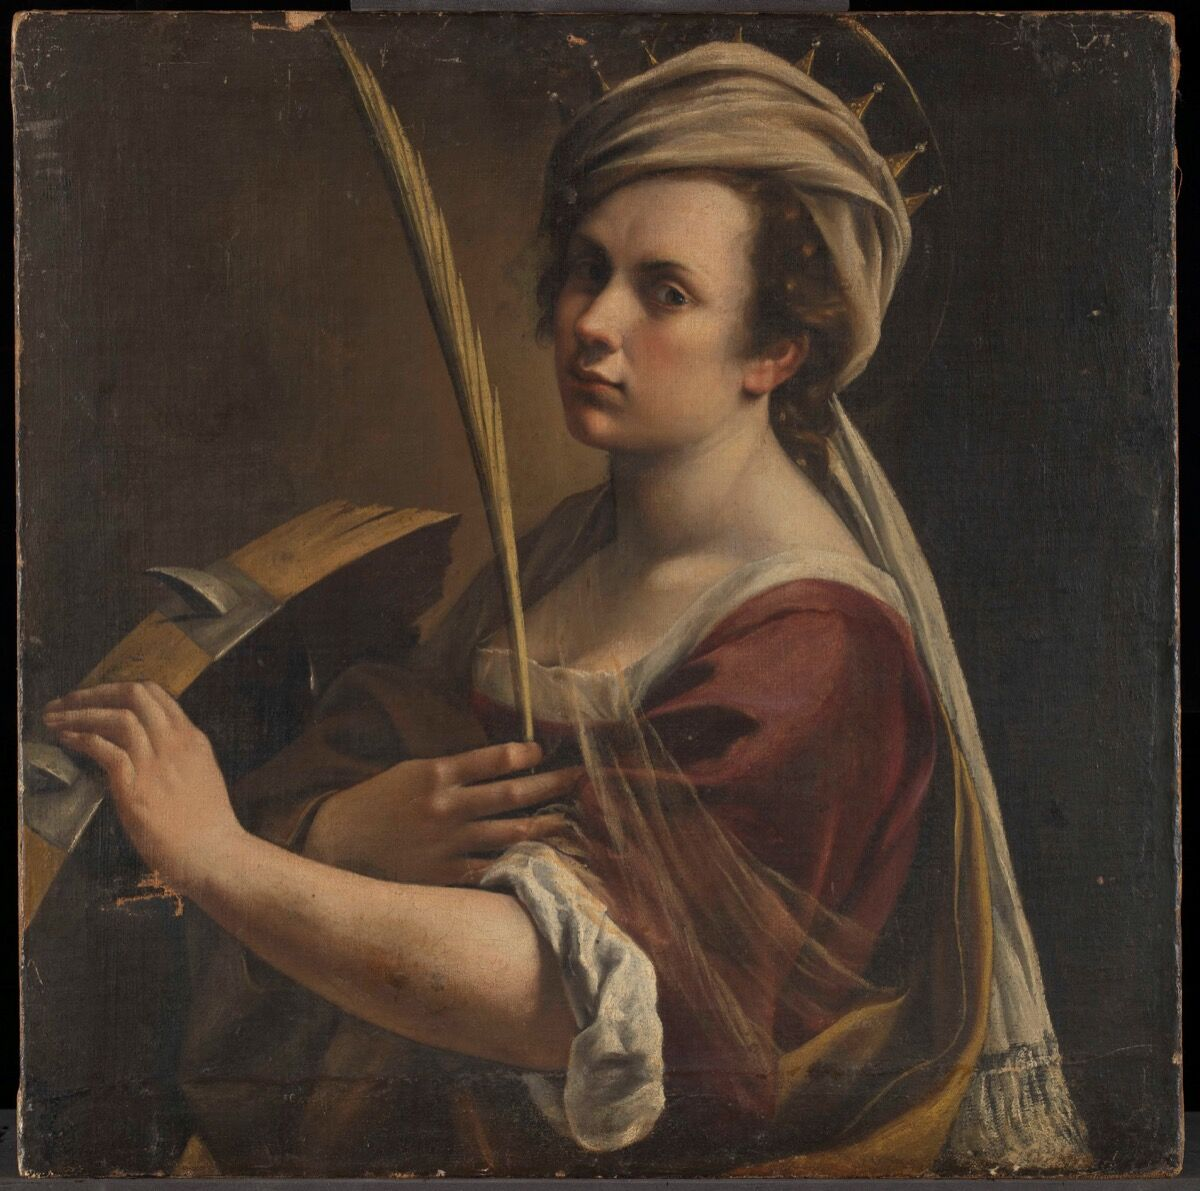 Artemisia Gentileschi, Self Portrait as Saint Catherine of Alexandria, about 1615–17. © The National Gallery, London. Courtesy of The National Gallery, London.